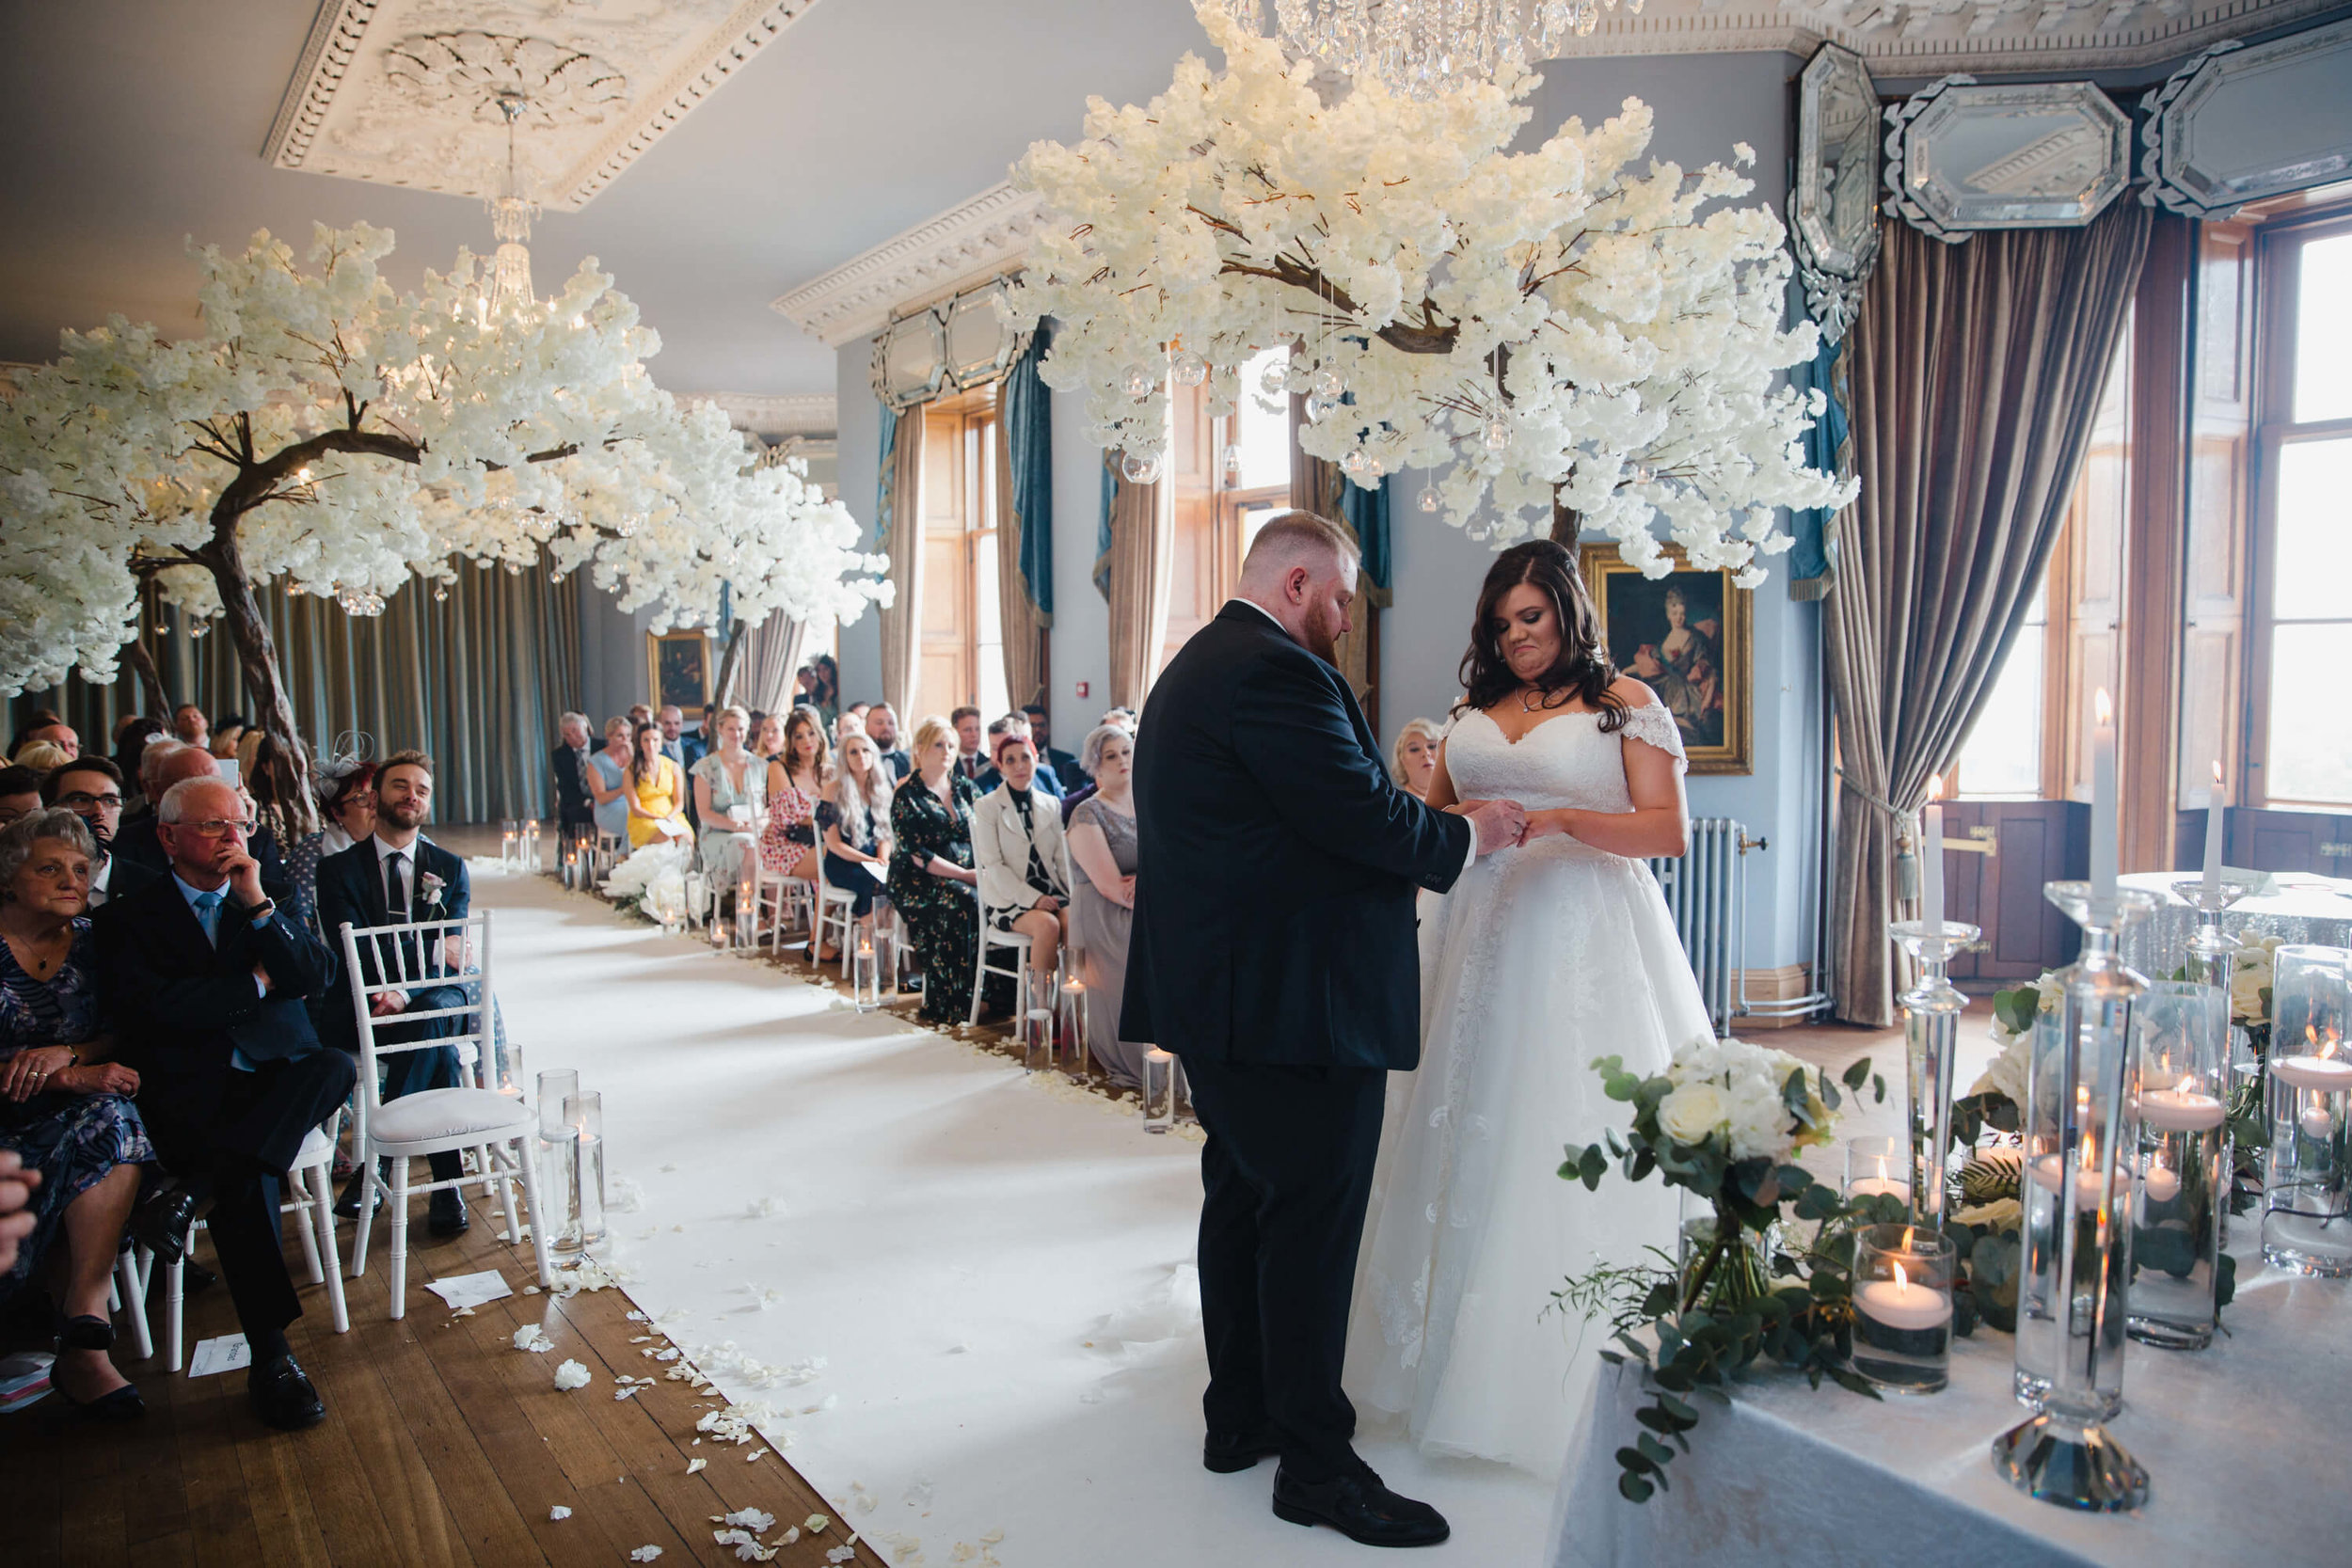 wide angle lens photograph of wedding couple exchanging rings